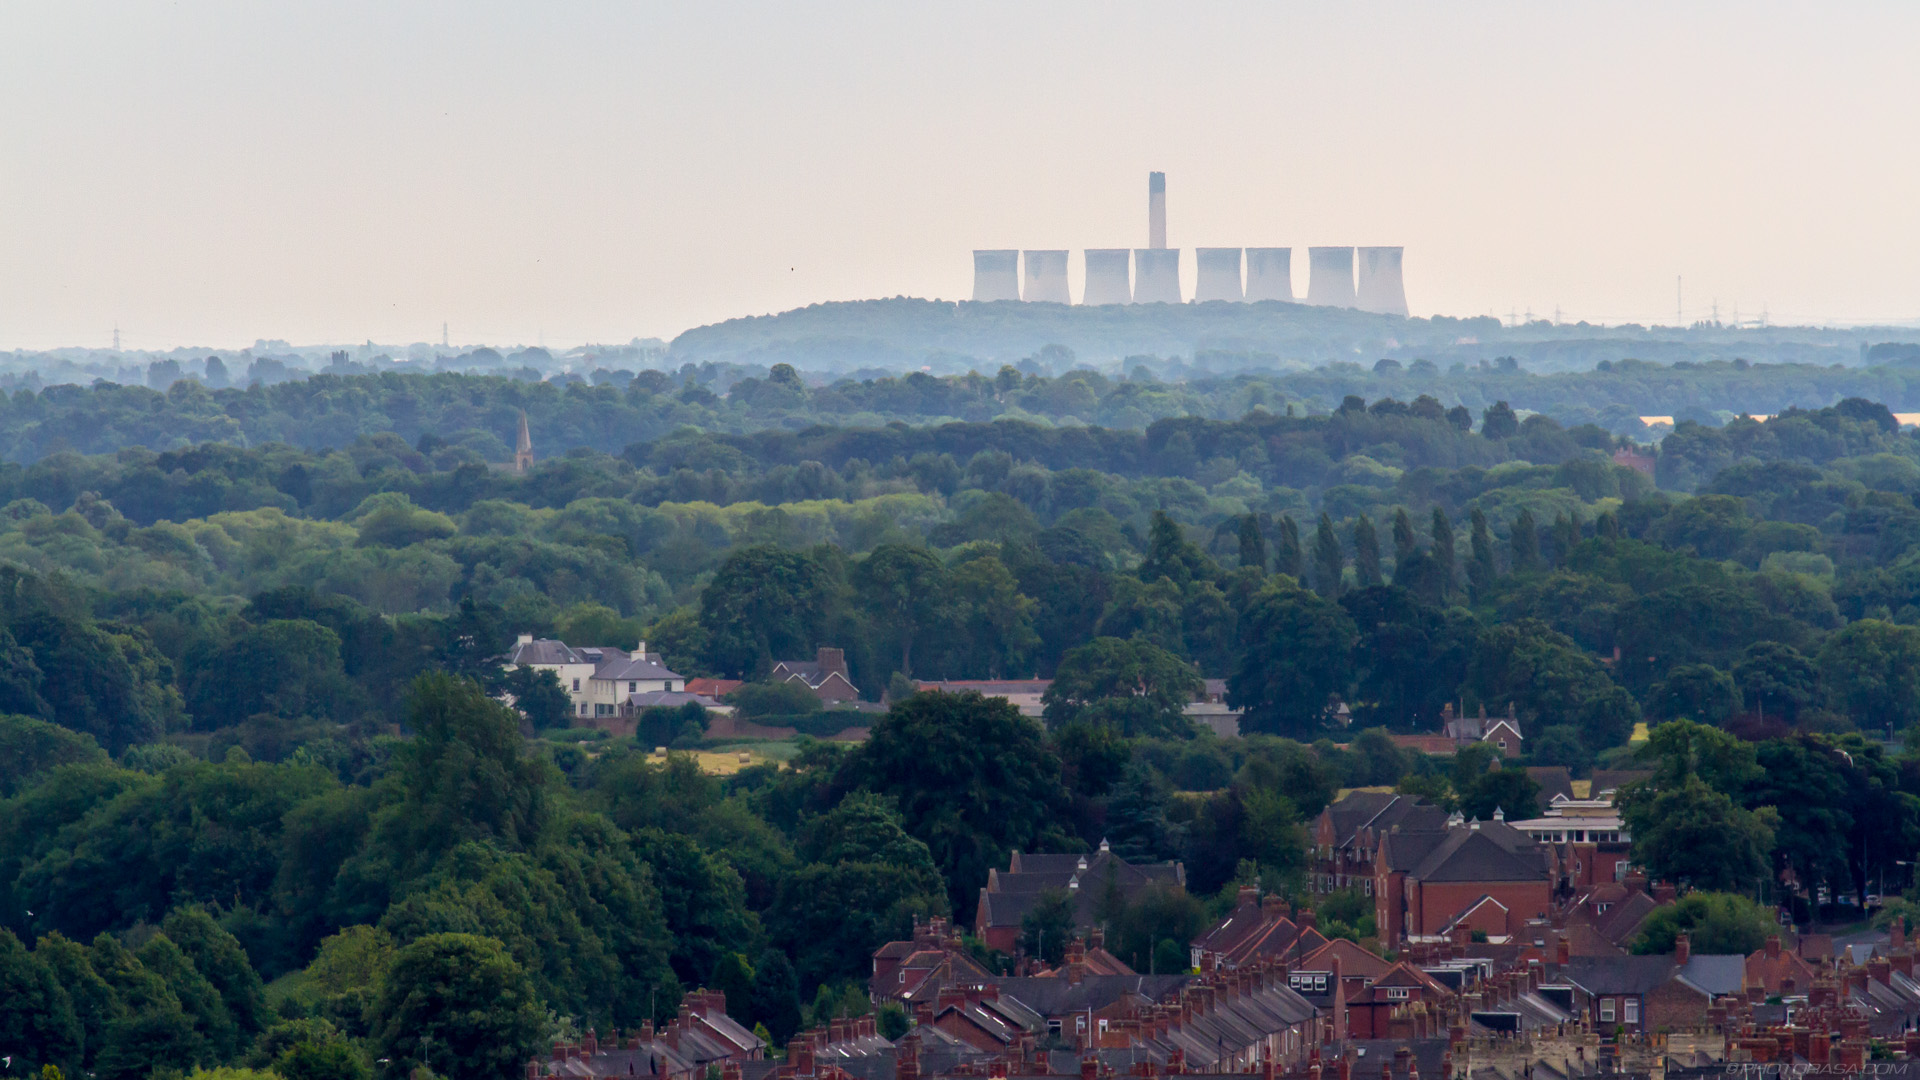 http://photorasa.com/places/yorkminster-cathedral/attachment/eggborough-power-station-from-yorkminster-tower/